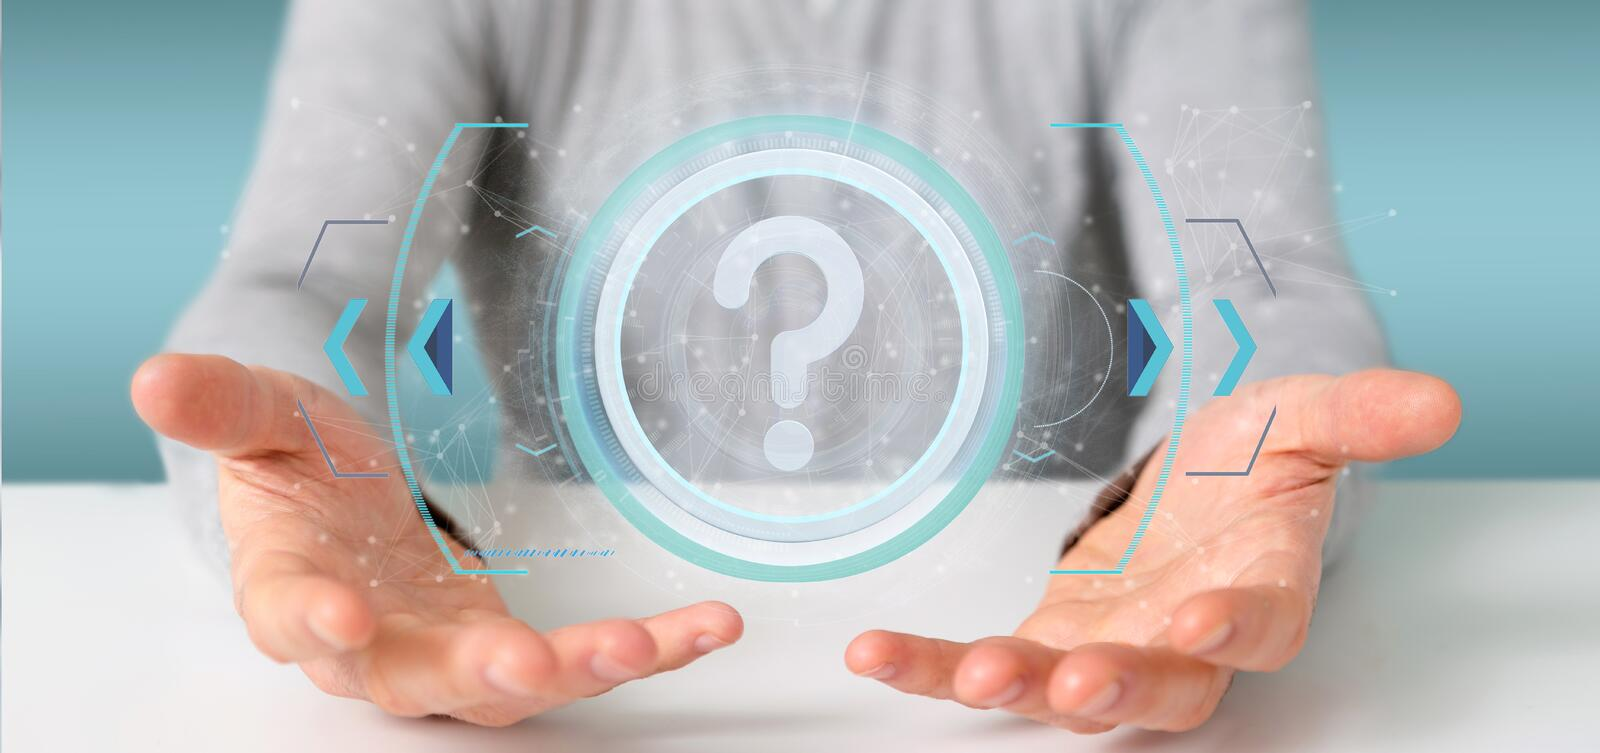 Man holding a Technology question mark icon on a circle 3d rendering. View of a Man holding a Technology question mark icon on a circle 3d rendering stock images